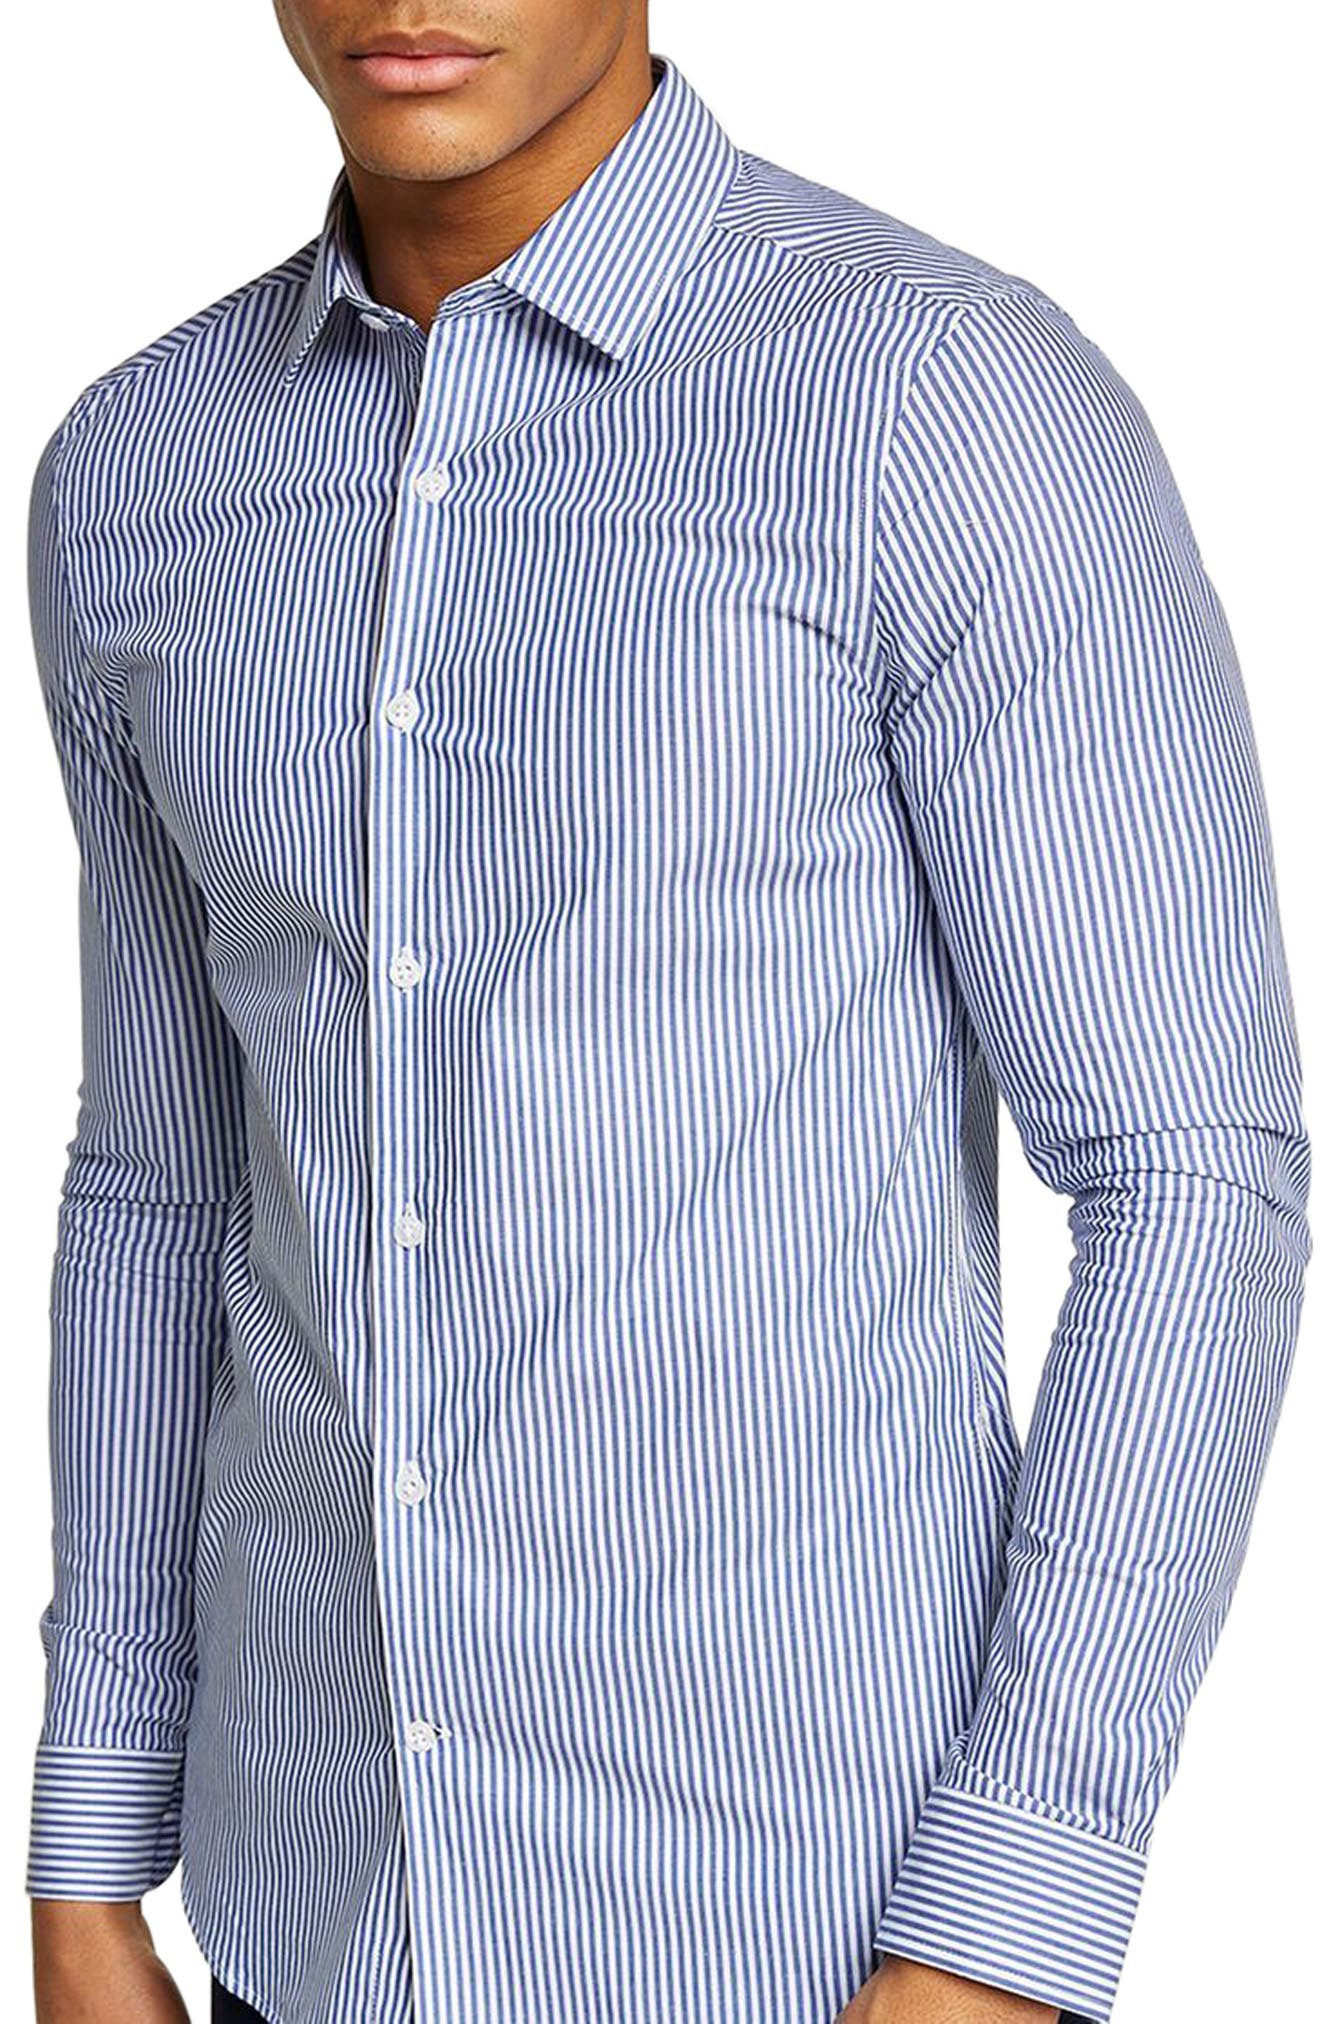 Muscle Fit Stripe Shirt,                         Main,                         color, Blue Multi